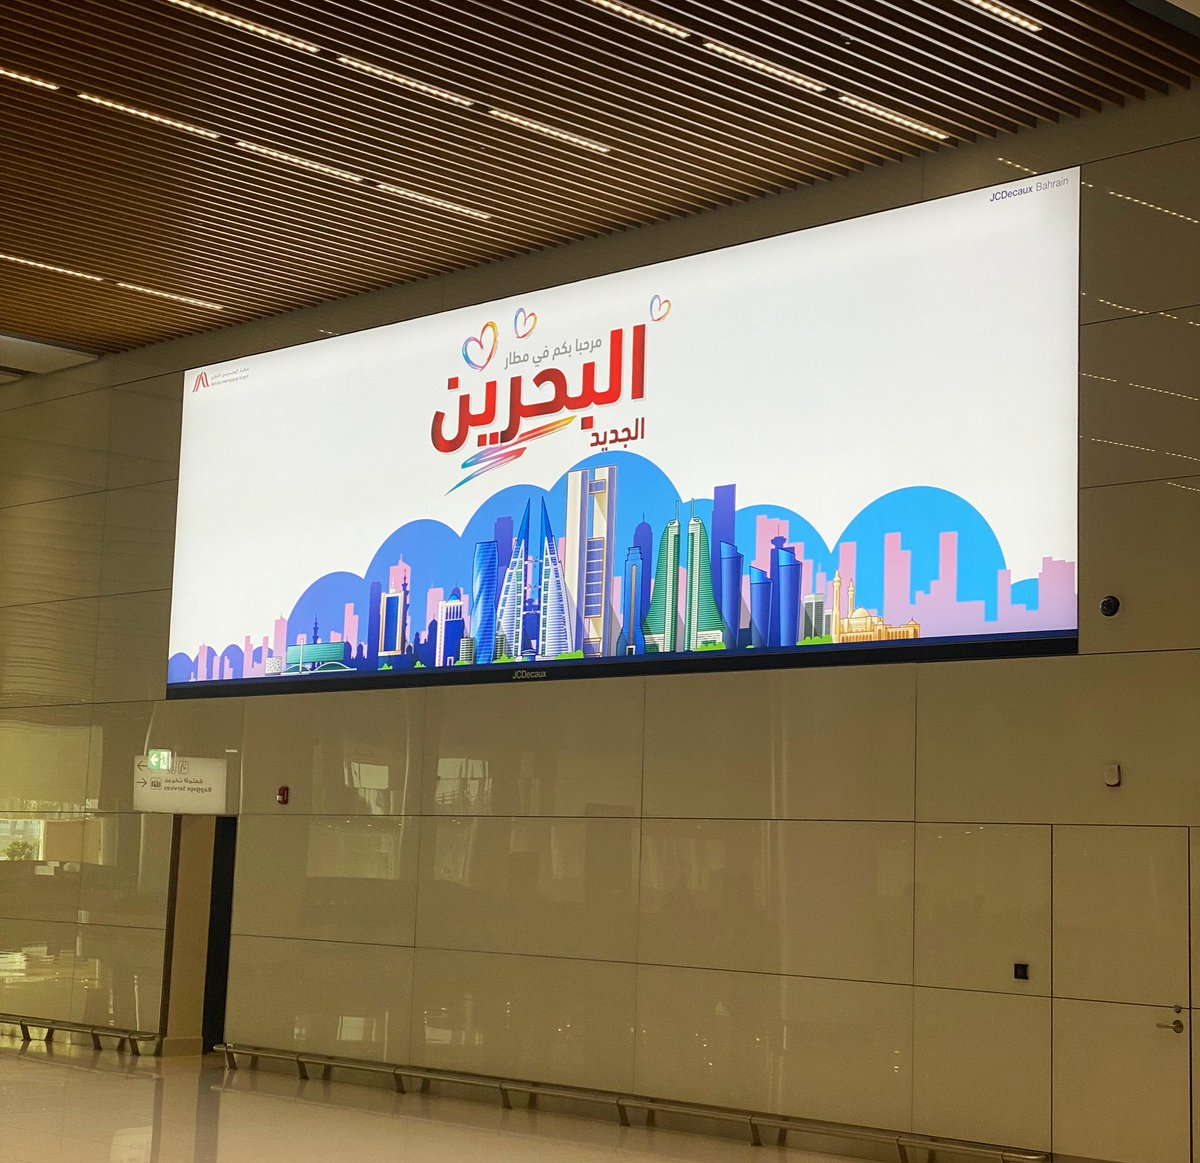 We arrived to the Land of Peace #Bahrain.It has been such an amazing trip,I will share my thoughts & prospectives day by day about what I've experienced and seen it with my eyes. Thanks @sharakango I can't tell u how grateful I am for choosing me to experience this historic trip!